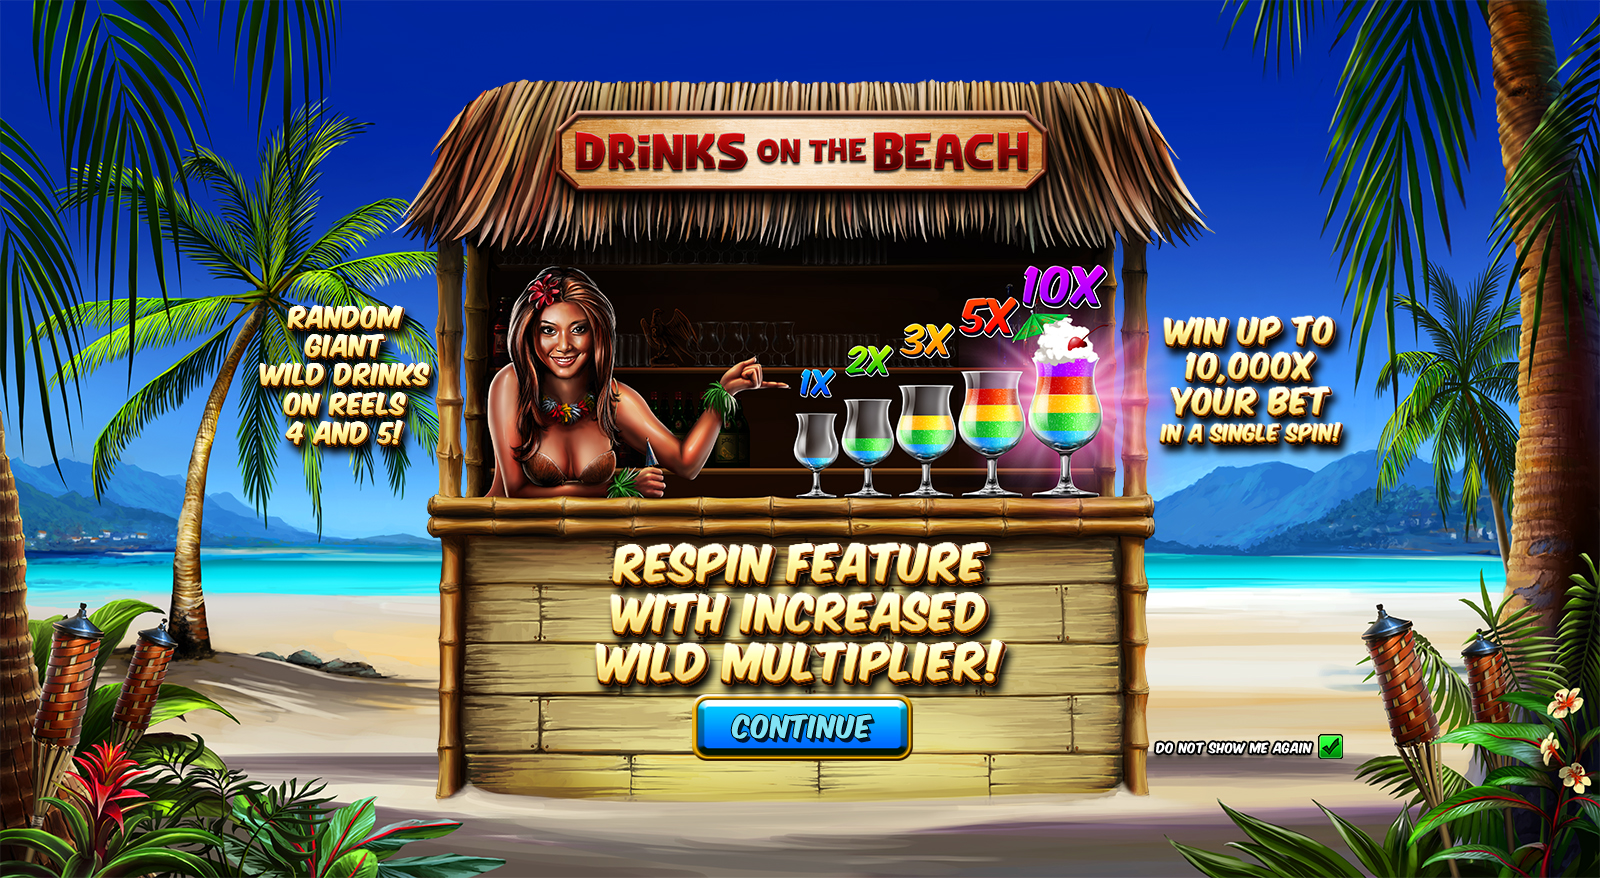 Drinks on the Beach Splash Screen